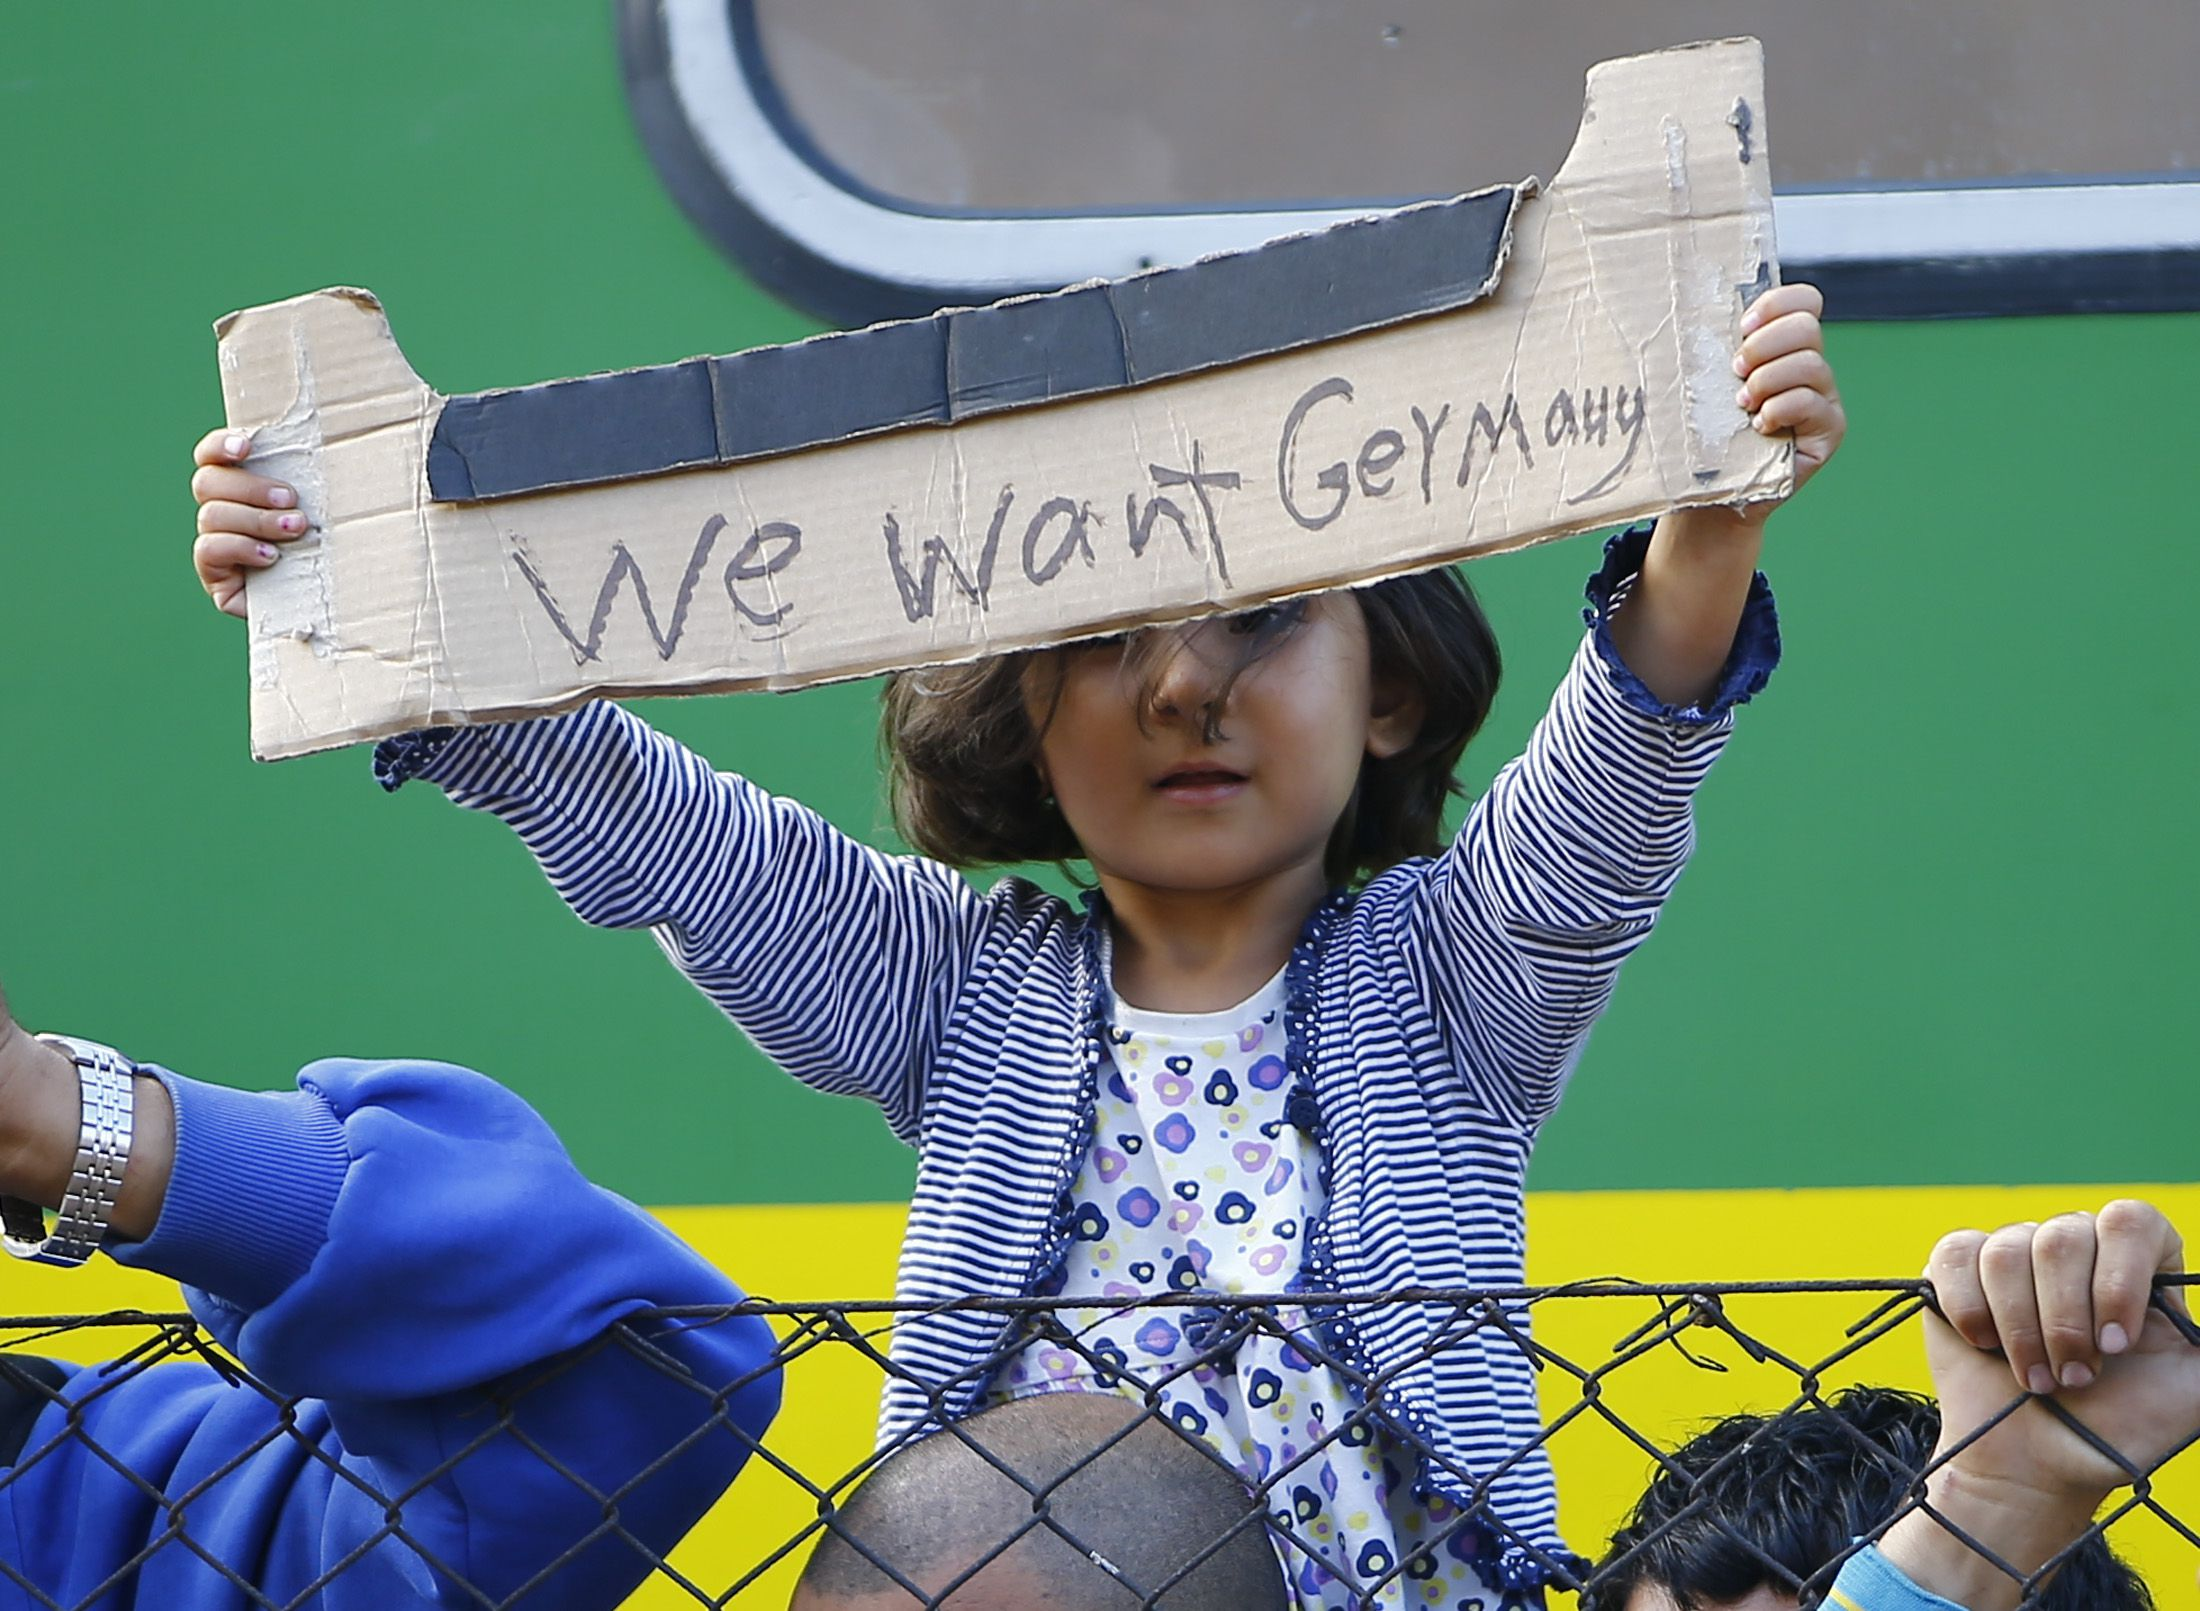 A young migrant girl holds up a sign during a protest in front of a train at Bicske railway station, Hungary, September 4, 2015.  Hundreds of migrants, many of them refugees from the Syrian war, woke after a night spent on a packed train stranded at a railway station west of Budapest, refusing to go to a nearby camp to process asylum seekers. The train had left Budapest on Thursday morning after a two-day standoff at the city's main railway station as police barred entry to some 2,000 migrants. Hungary says they must be registered, as per European Union rules, but many refuse, fearing they will be sent back to Hungary if caught later in western and northern Europe.  REUTERS/Leonhard Foeger TPX IMAGES OF THE DAY   - RTX1R1KW